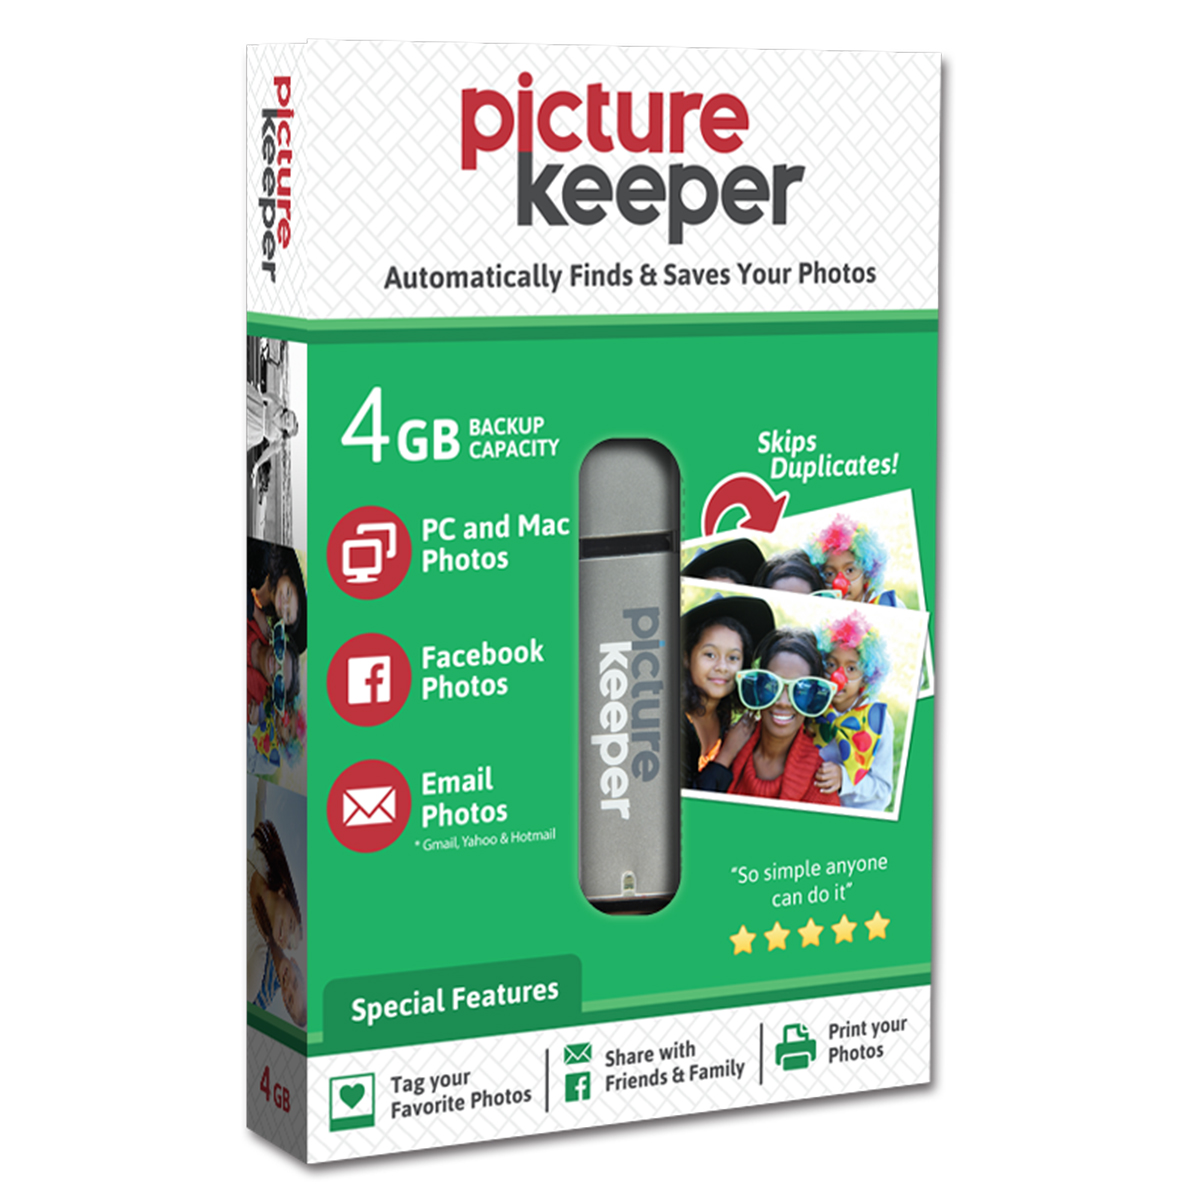 Picture Keeper Portable Flash Drive Photo Backup USB Drive 4GB